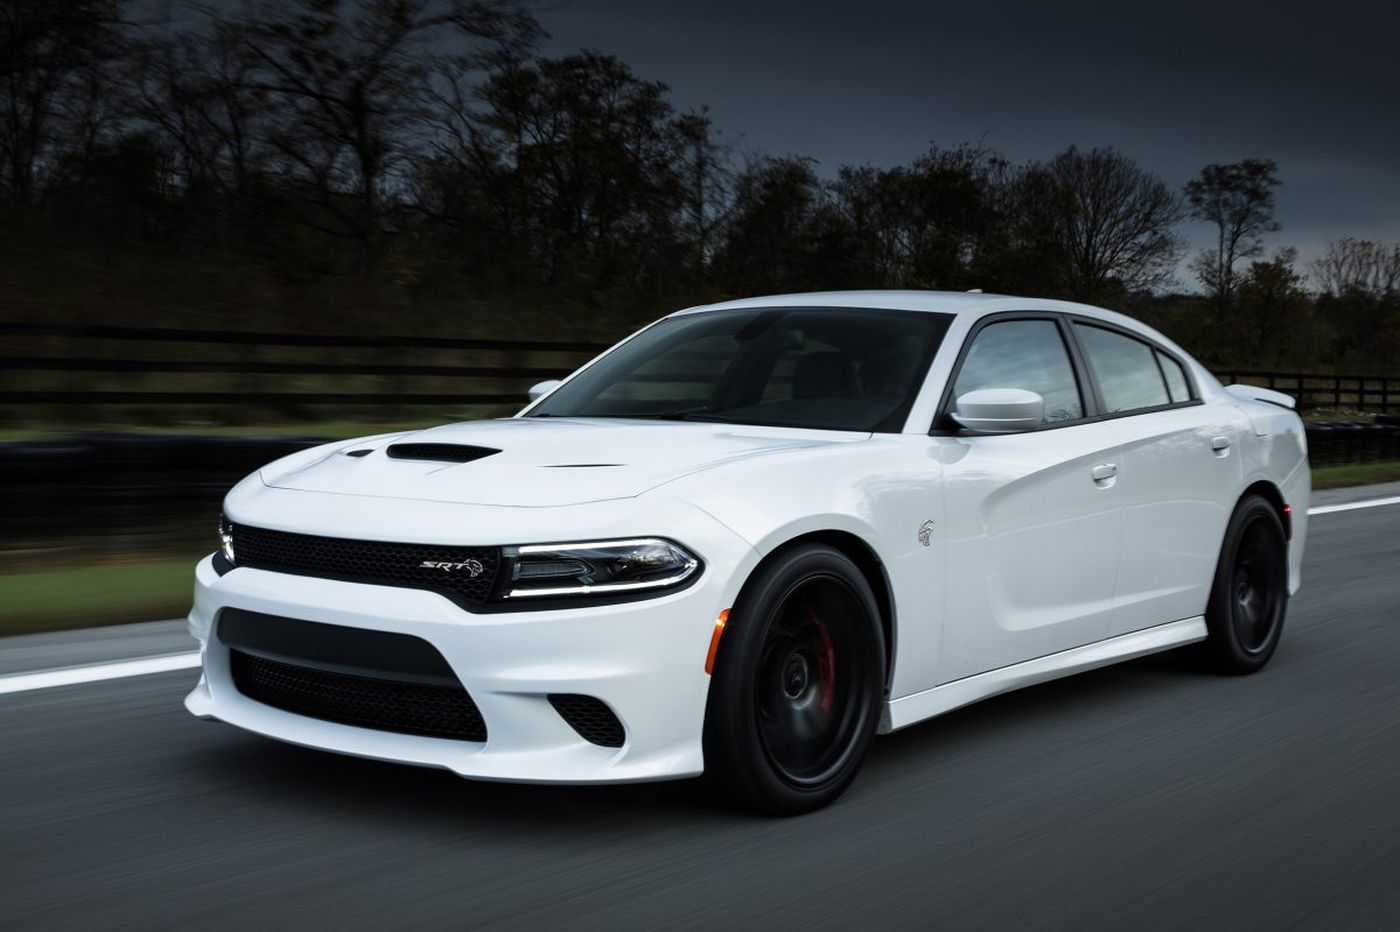 2018 Hellcat Charger >> 2018 Dodger Charger Srt Hellcat The World S Fastest Four Door